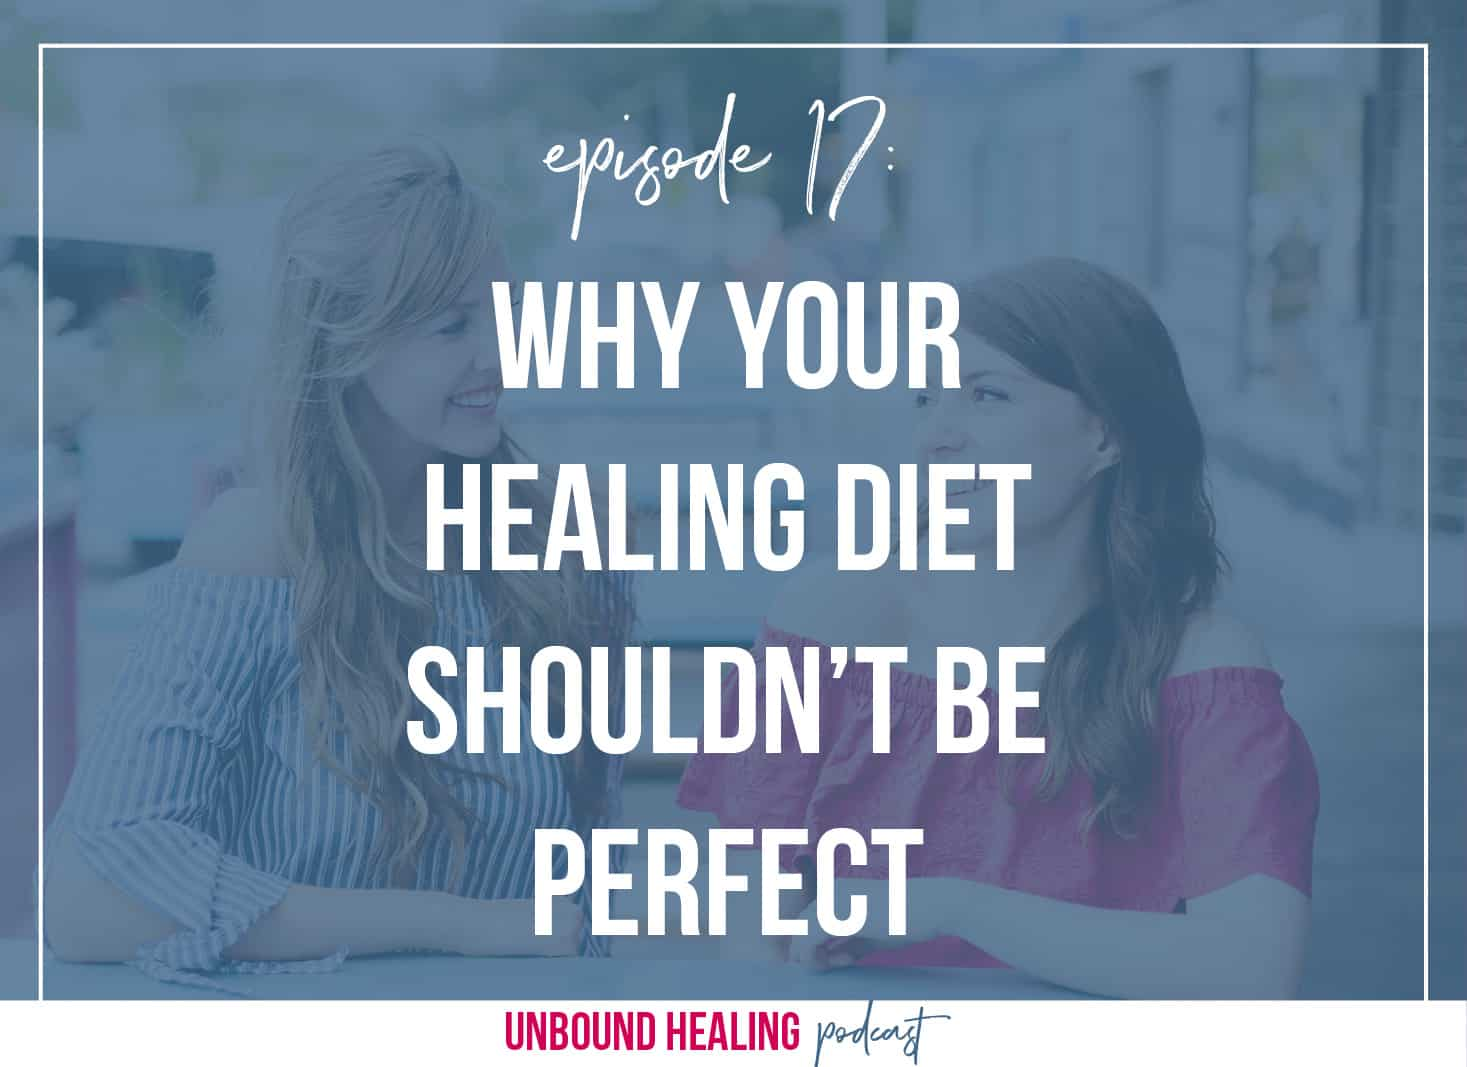 Why your healing diet shouldn't be perfect